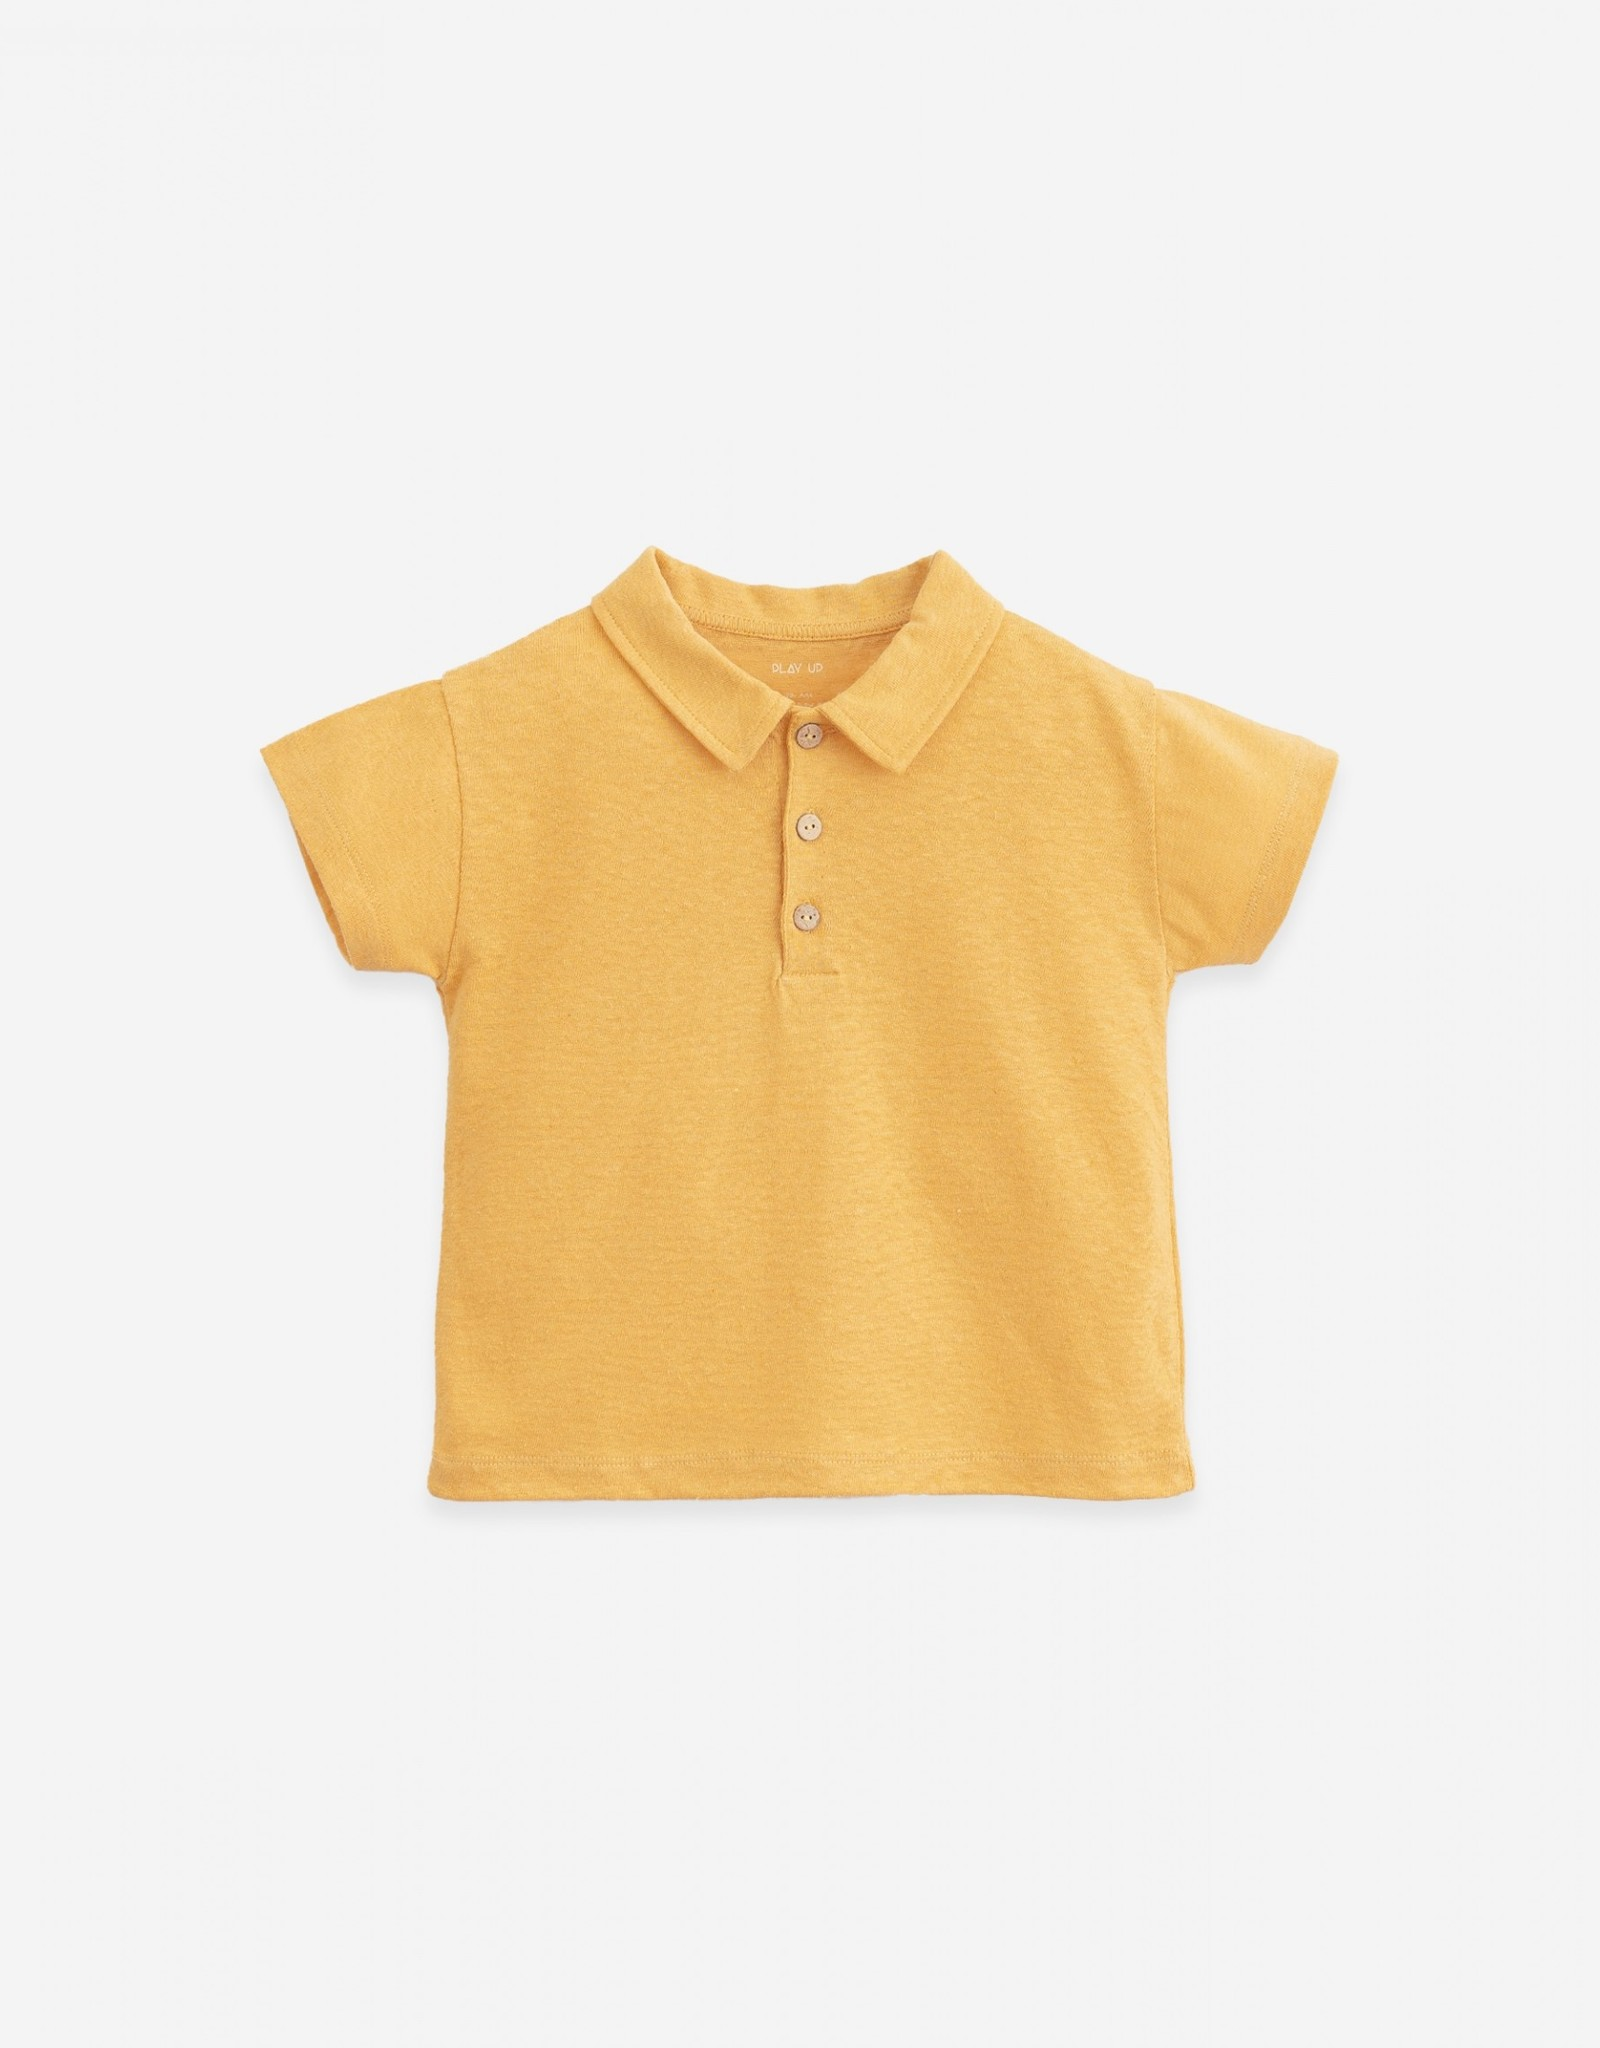 Play Up Play Up polo t-shirt sunflower